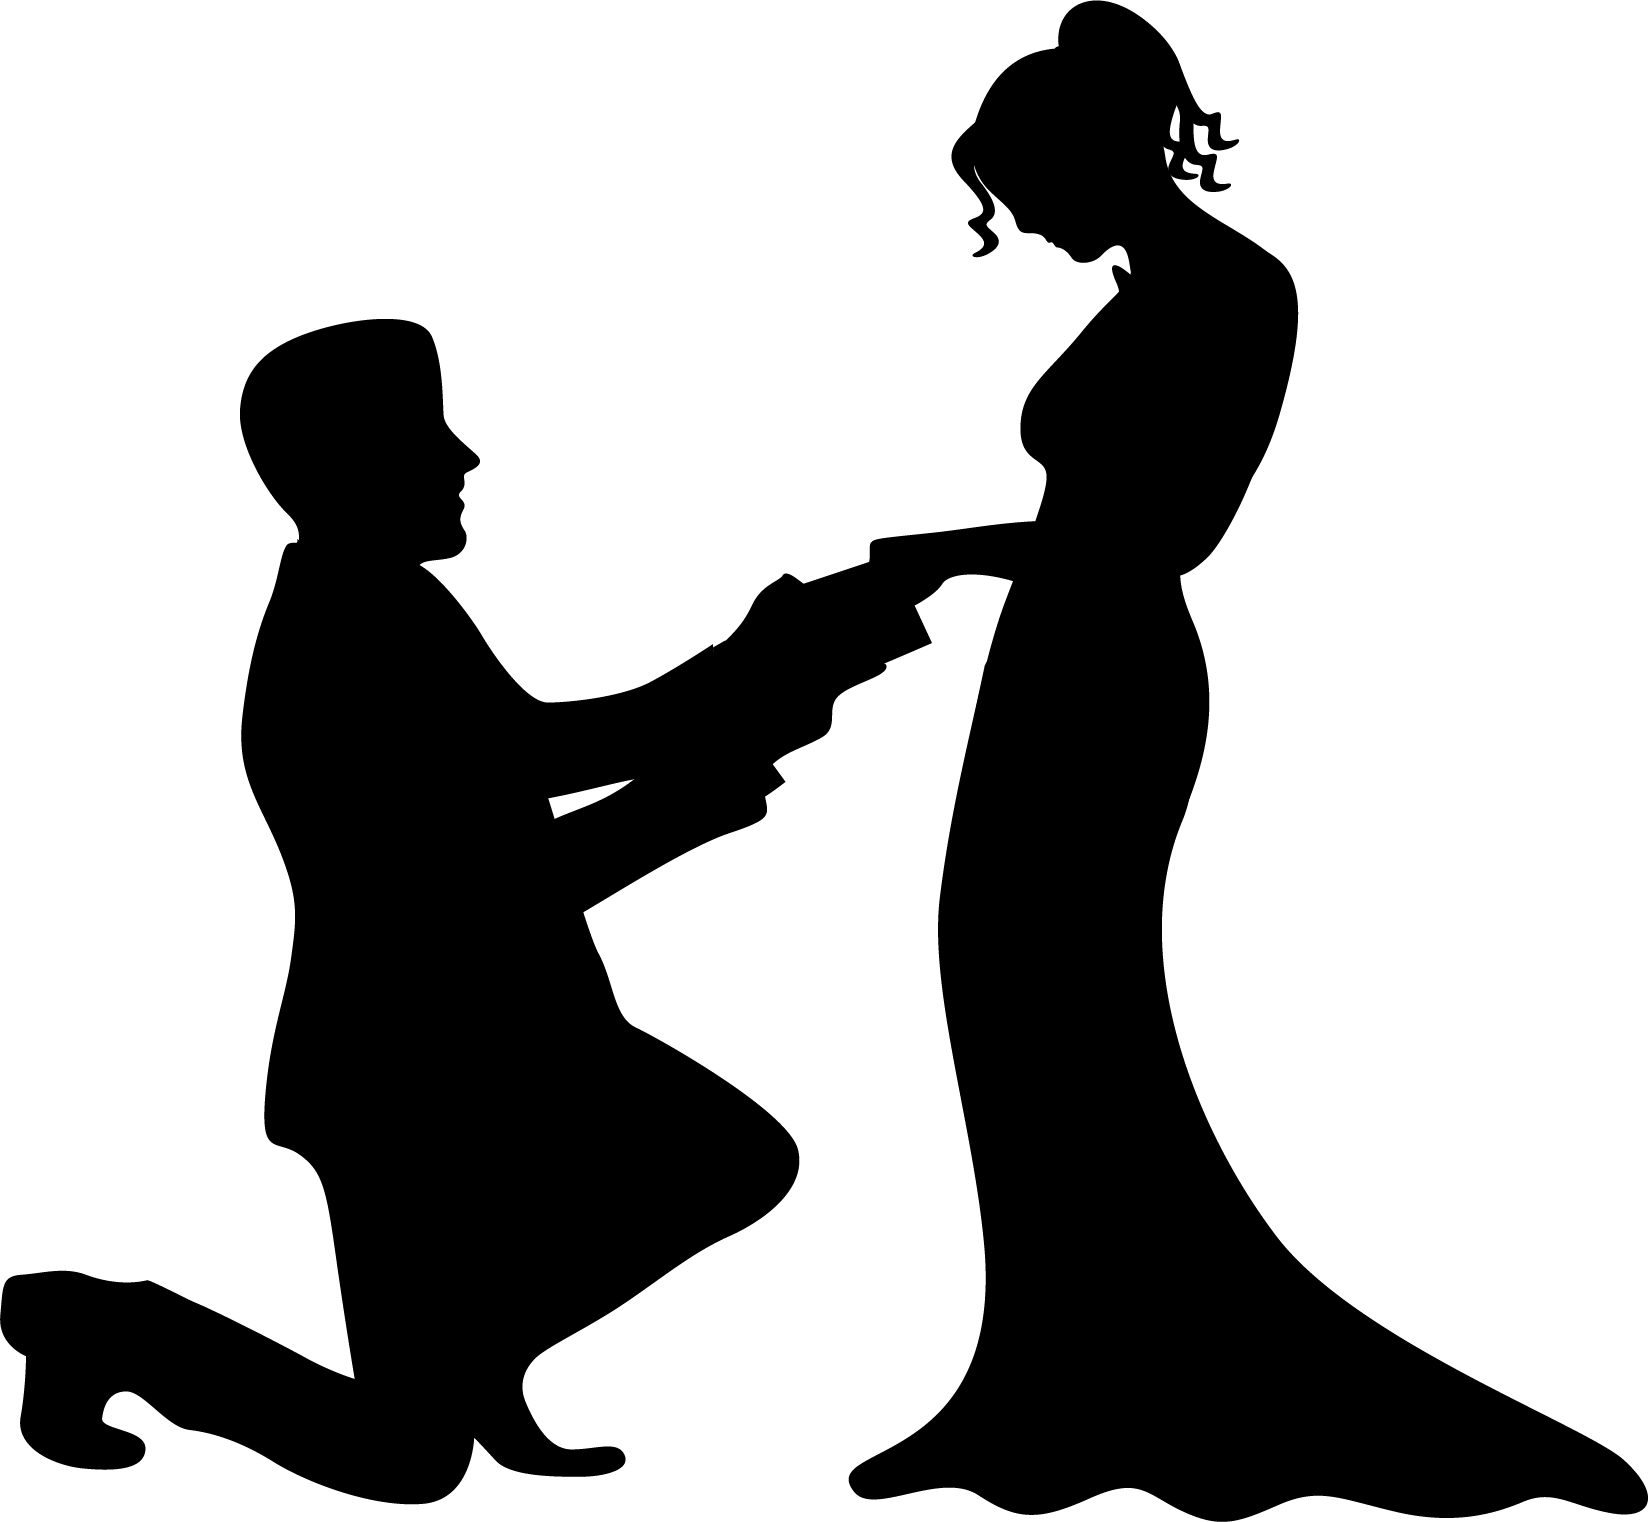 Wedding invitation Marriage Clip art.